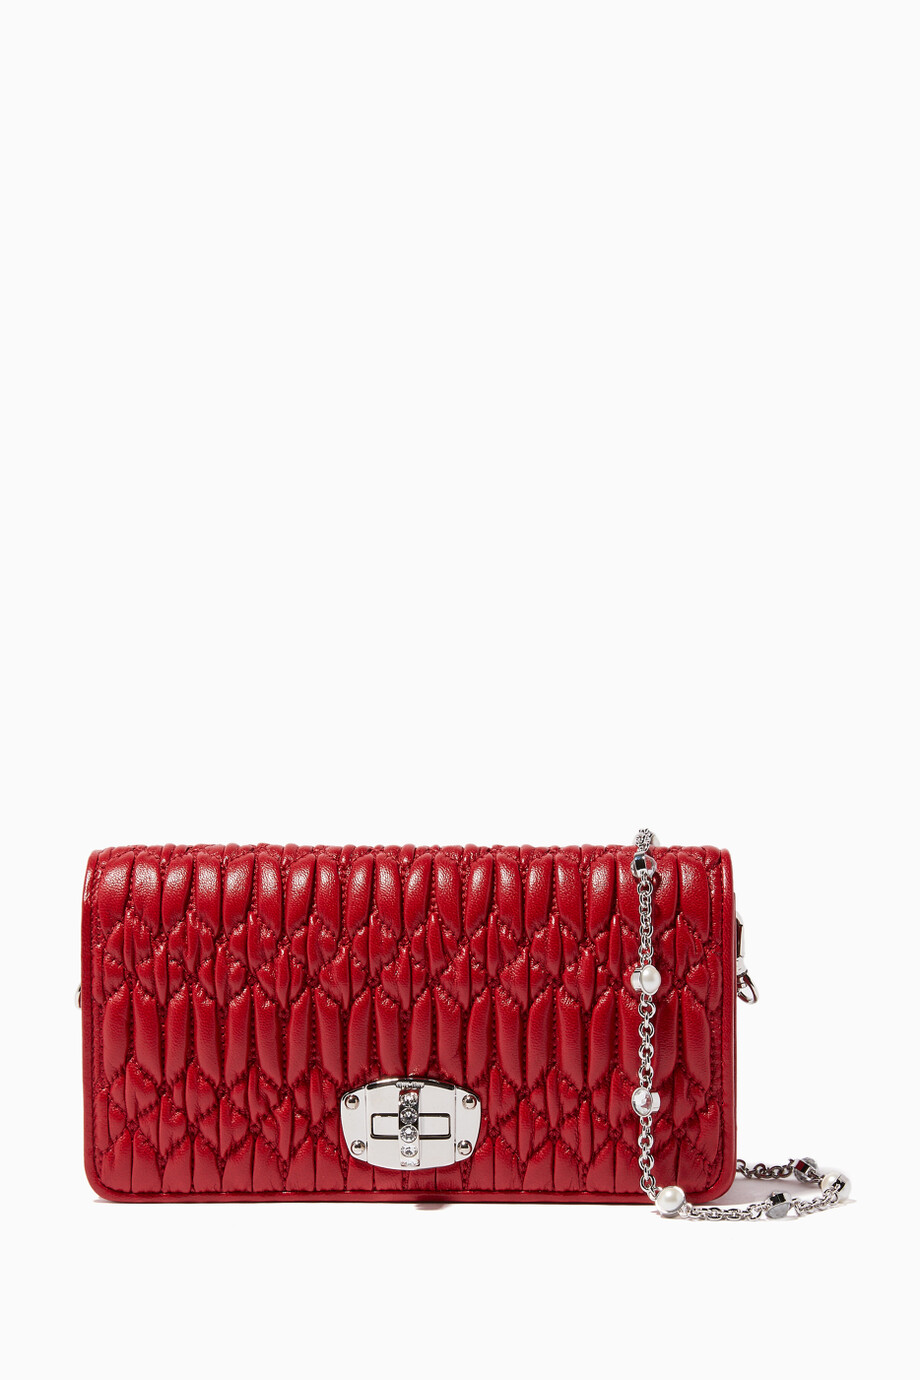 529bf0dd5cb6 Shop Miu Miu Red Red Crystal Chain Wallet for Women